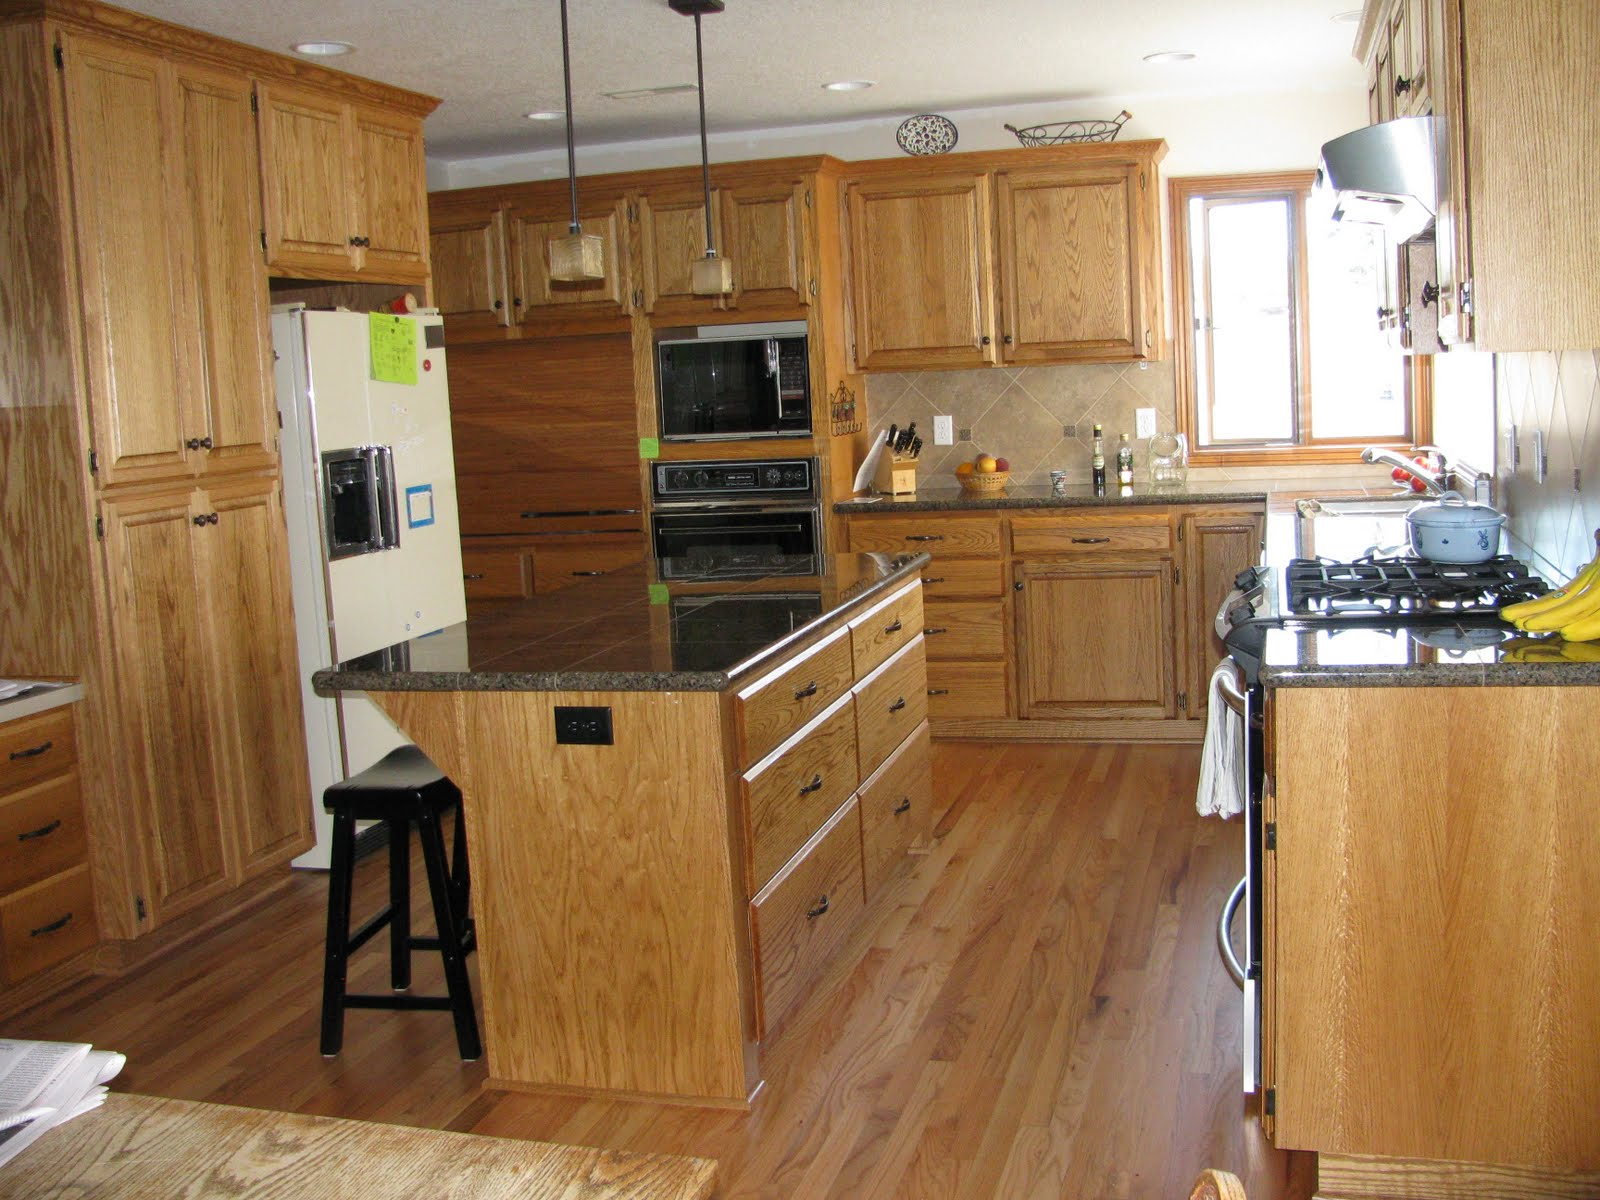 Top O' the Mountain: Kitchen Remodel